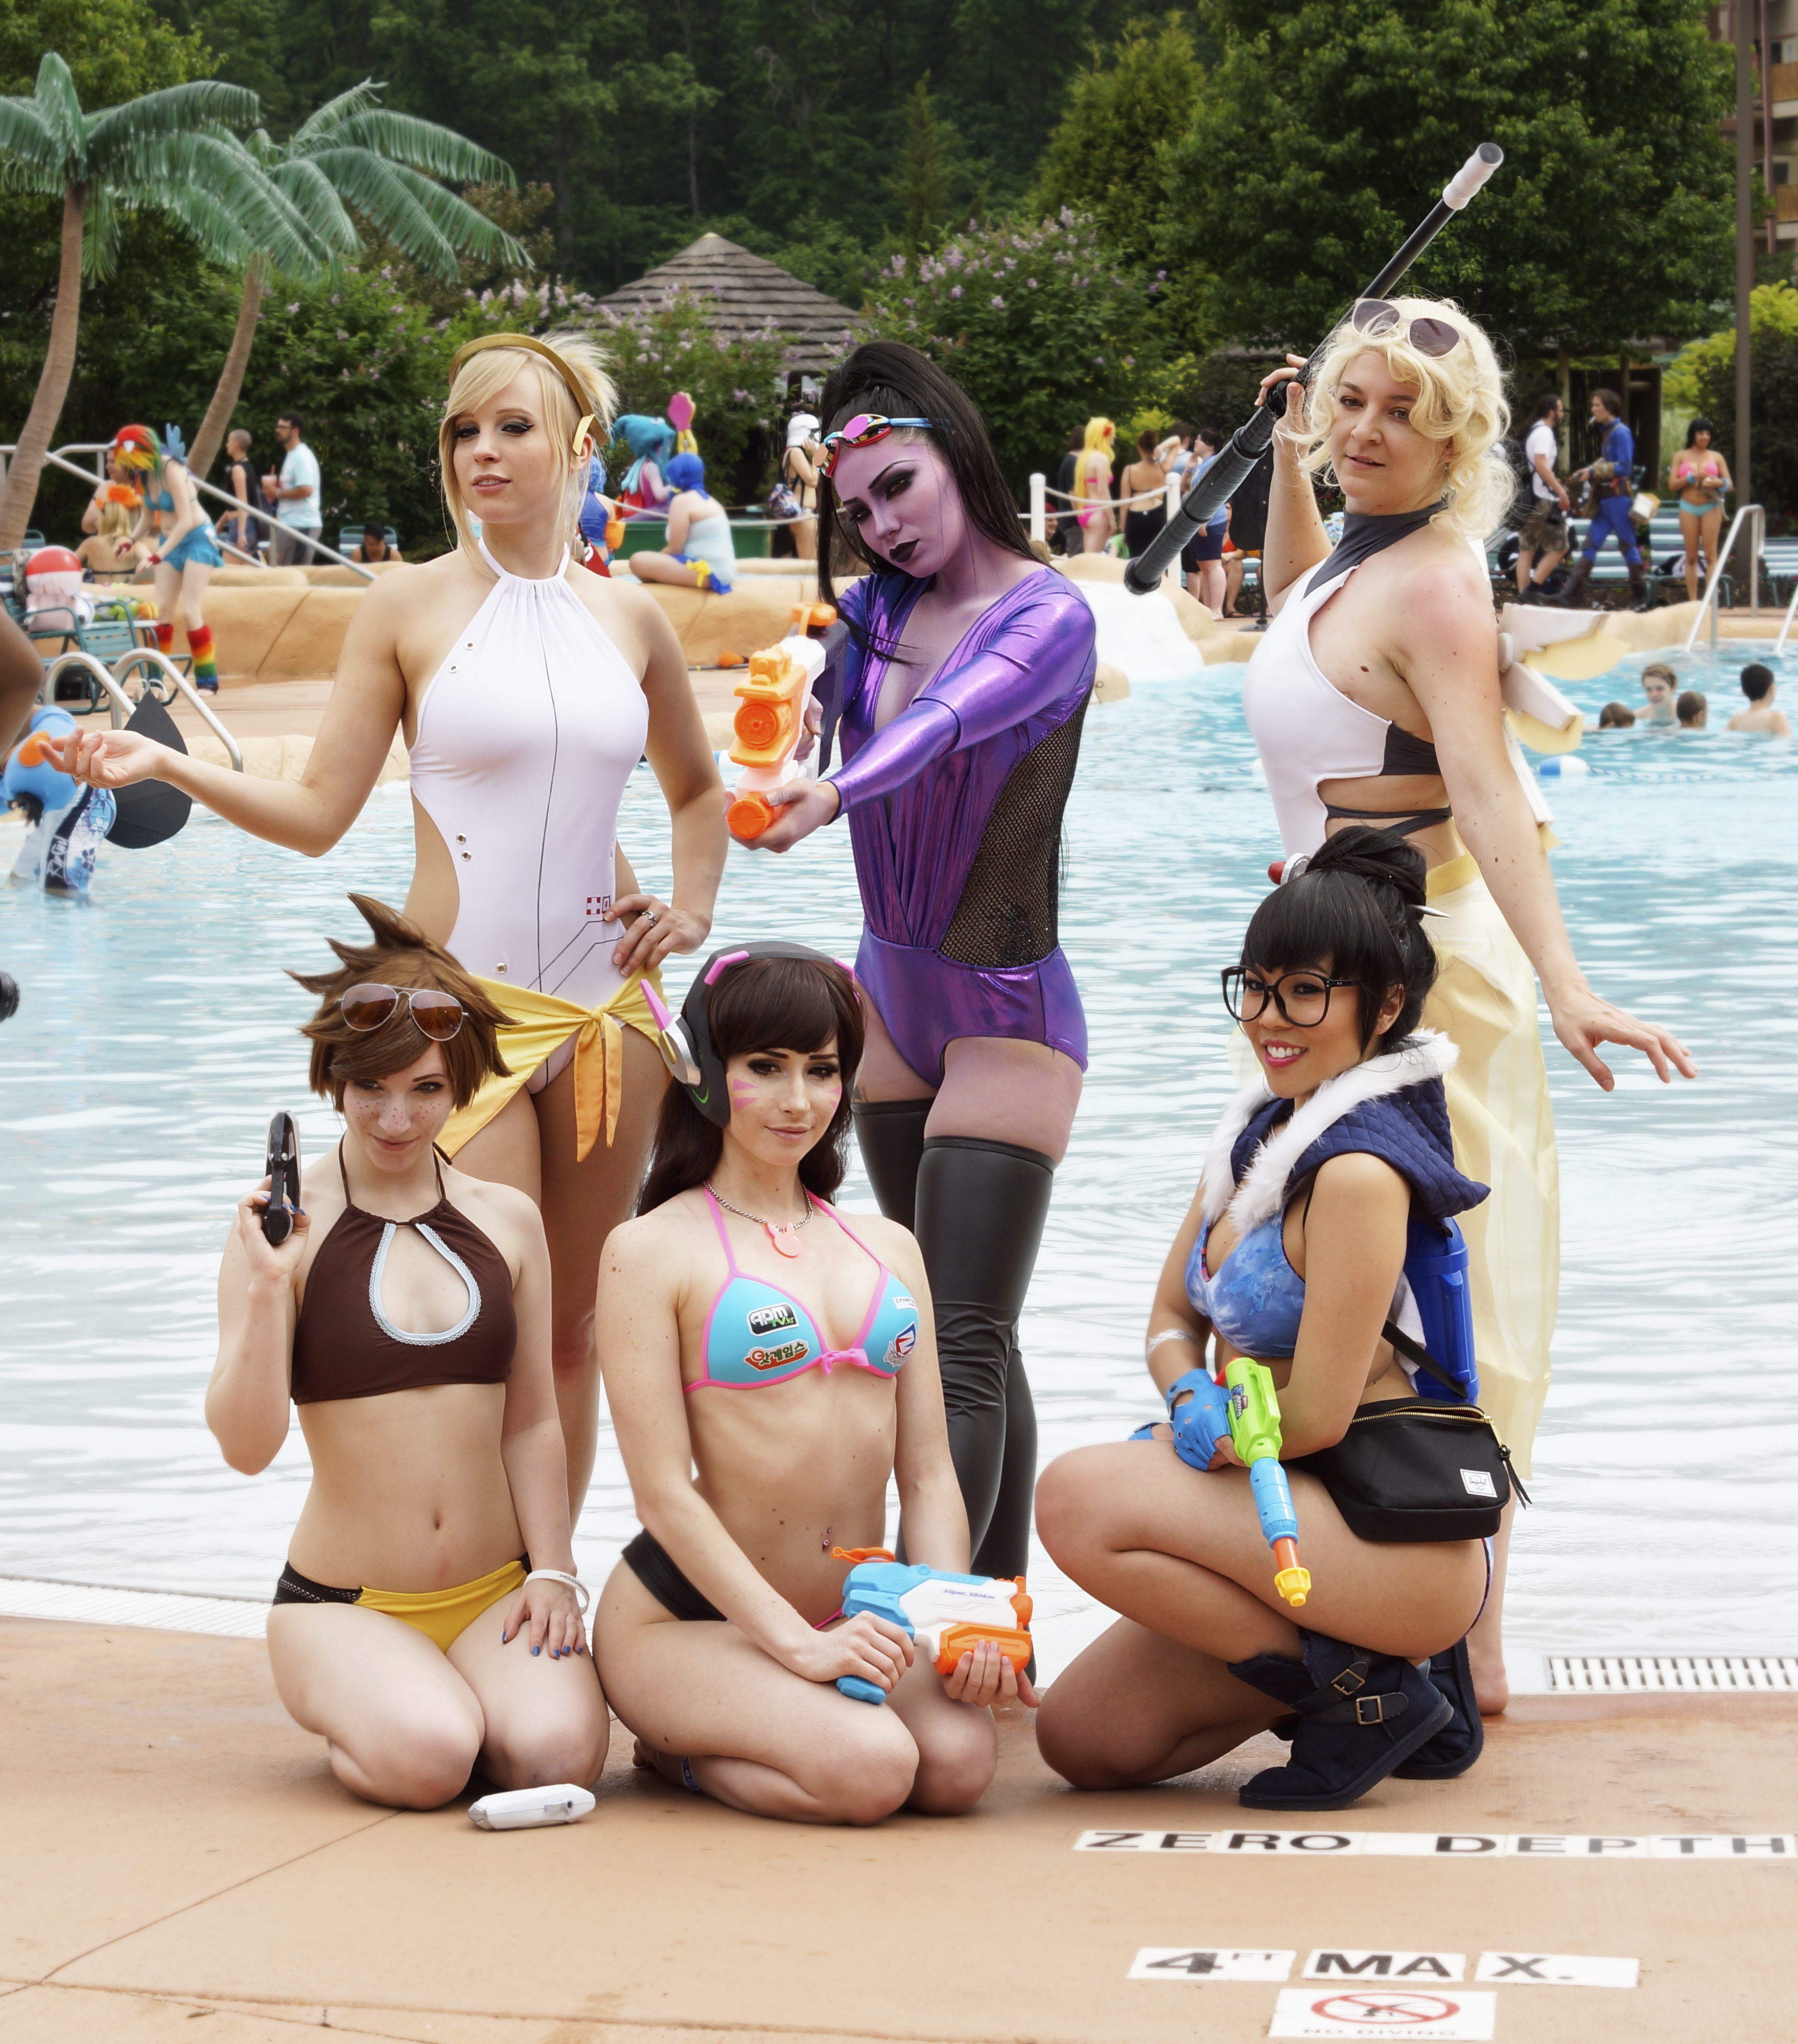 outside of syracuse colossalcon the vacation convention